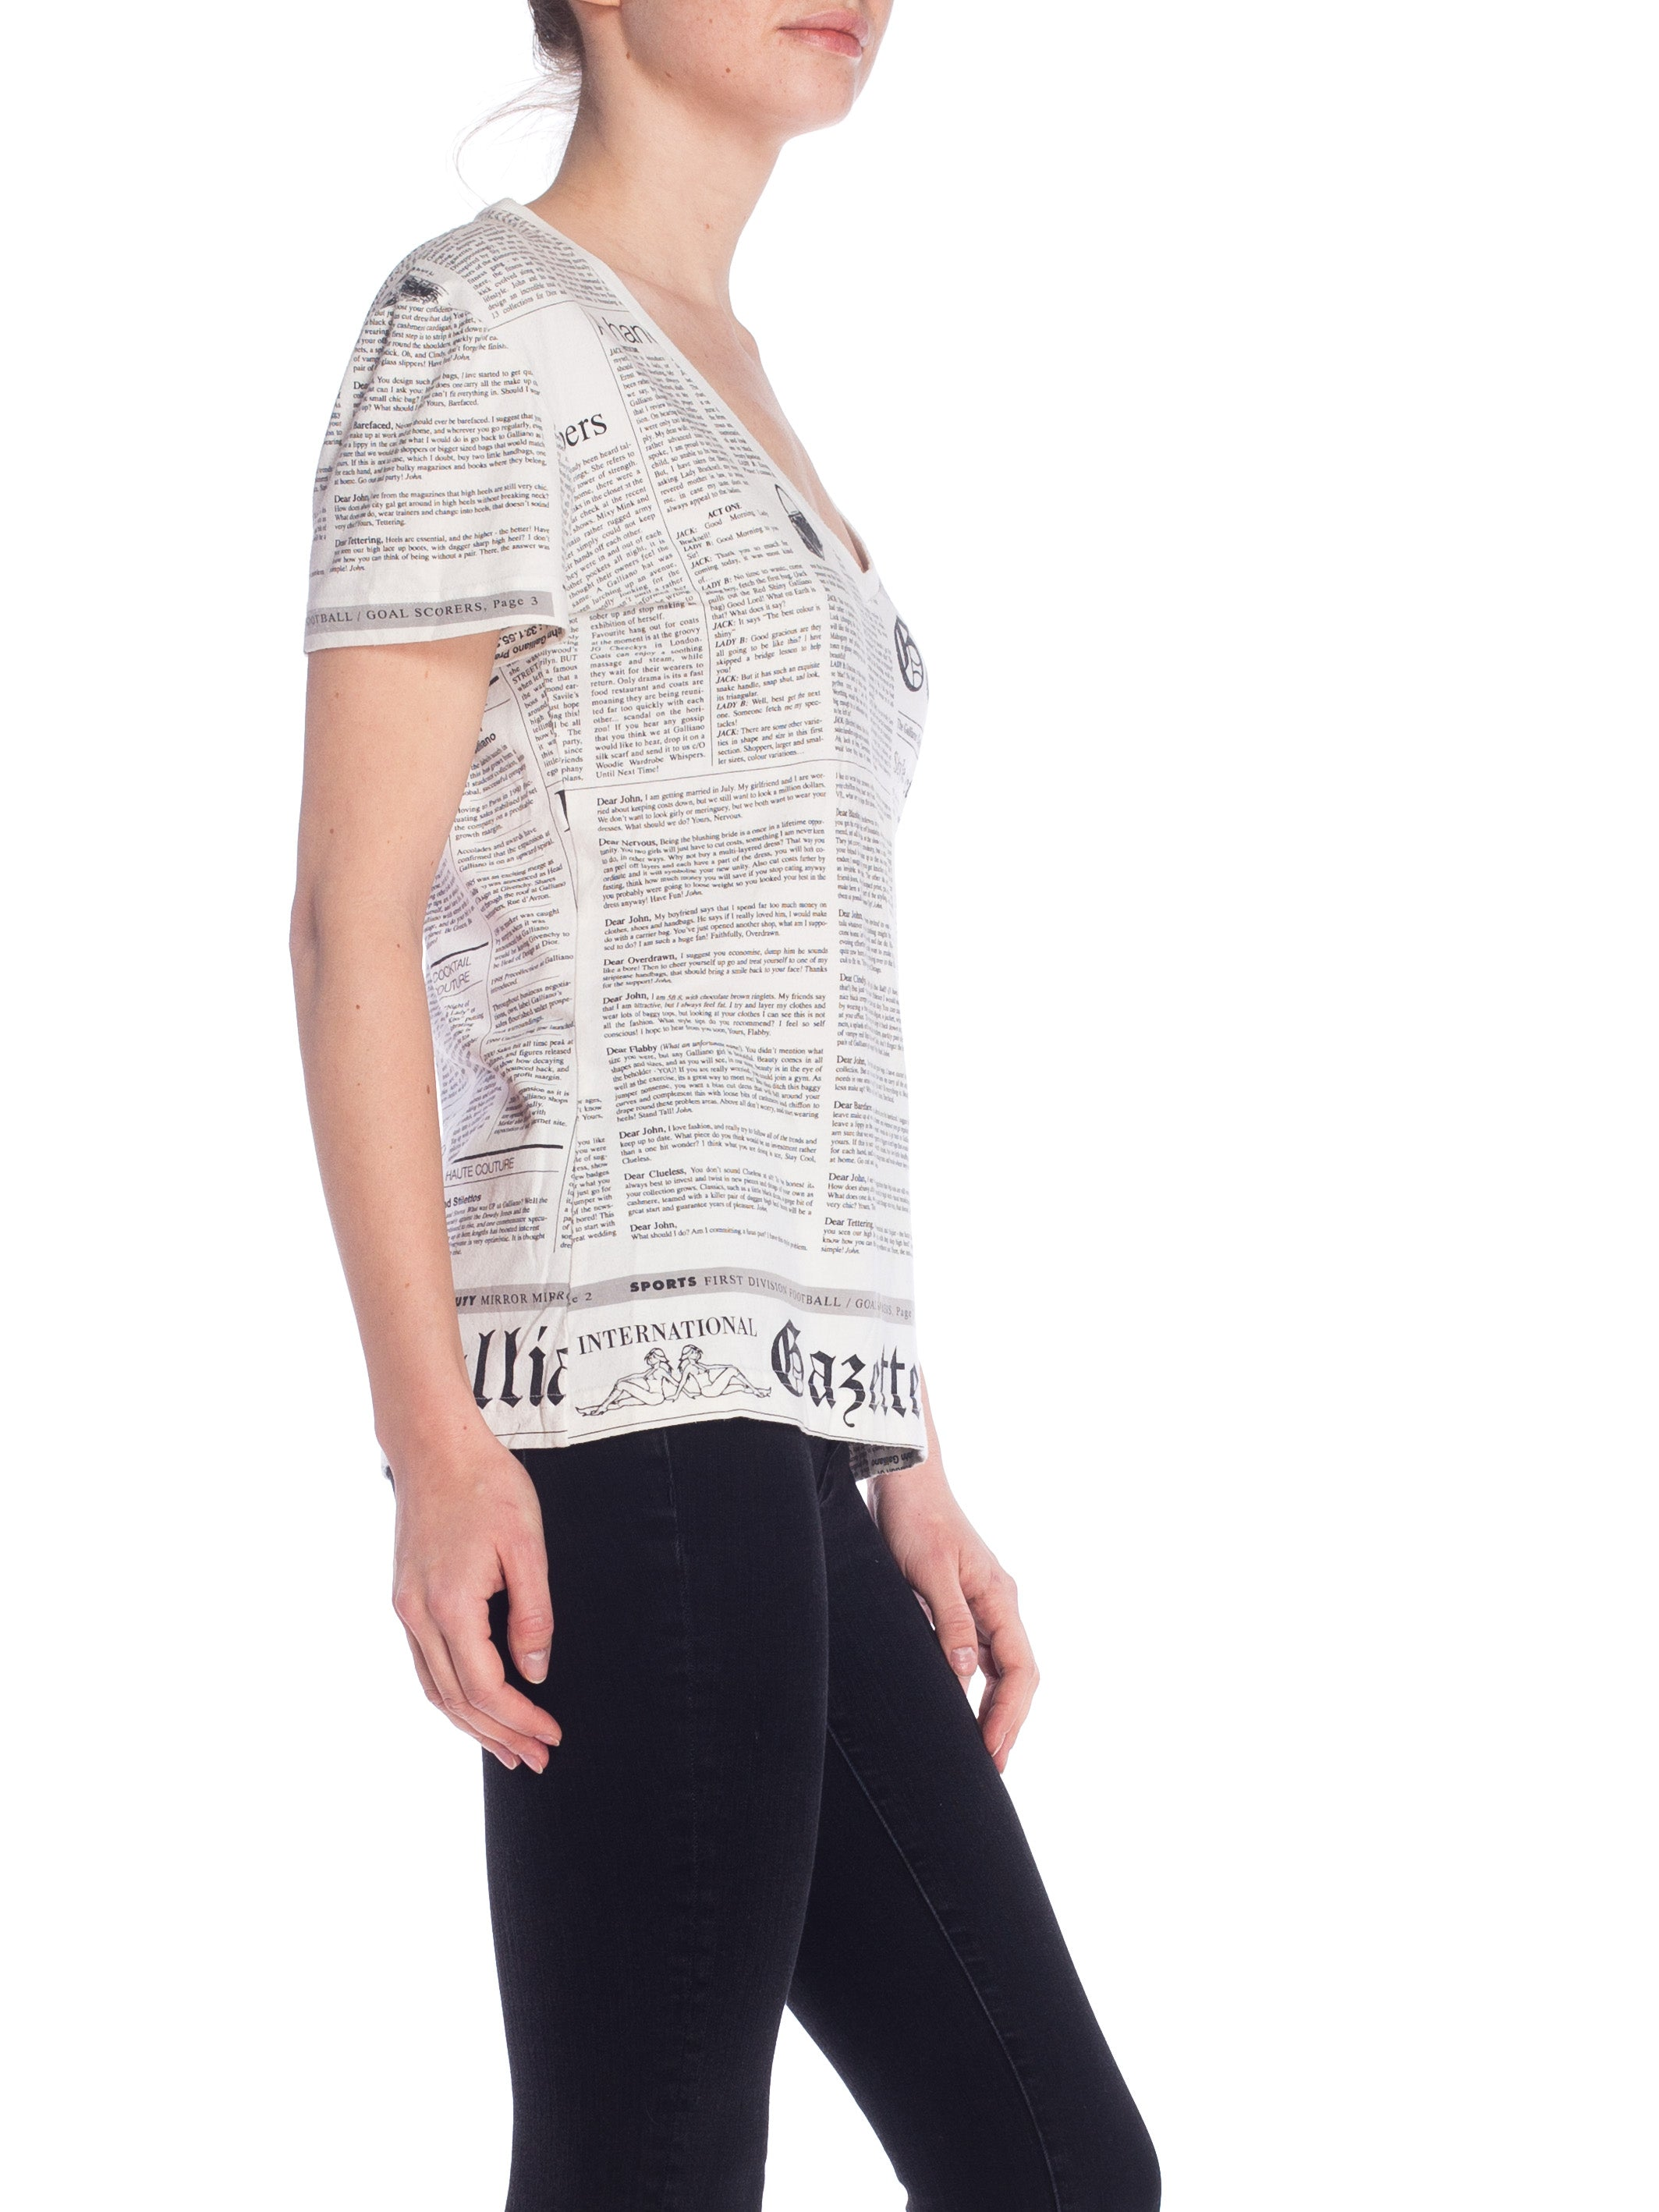 2000S JOHN GALLIANO White & Black Cotton Knit Newspaper Print V Neck T-Shirt